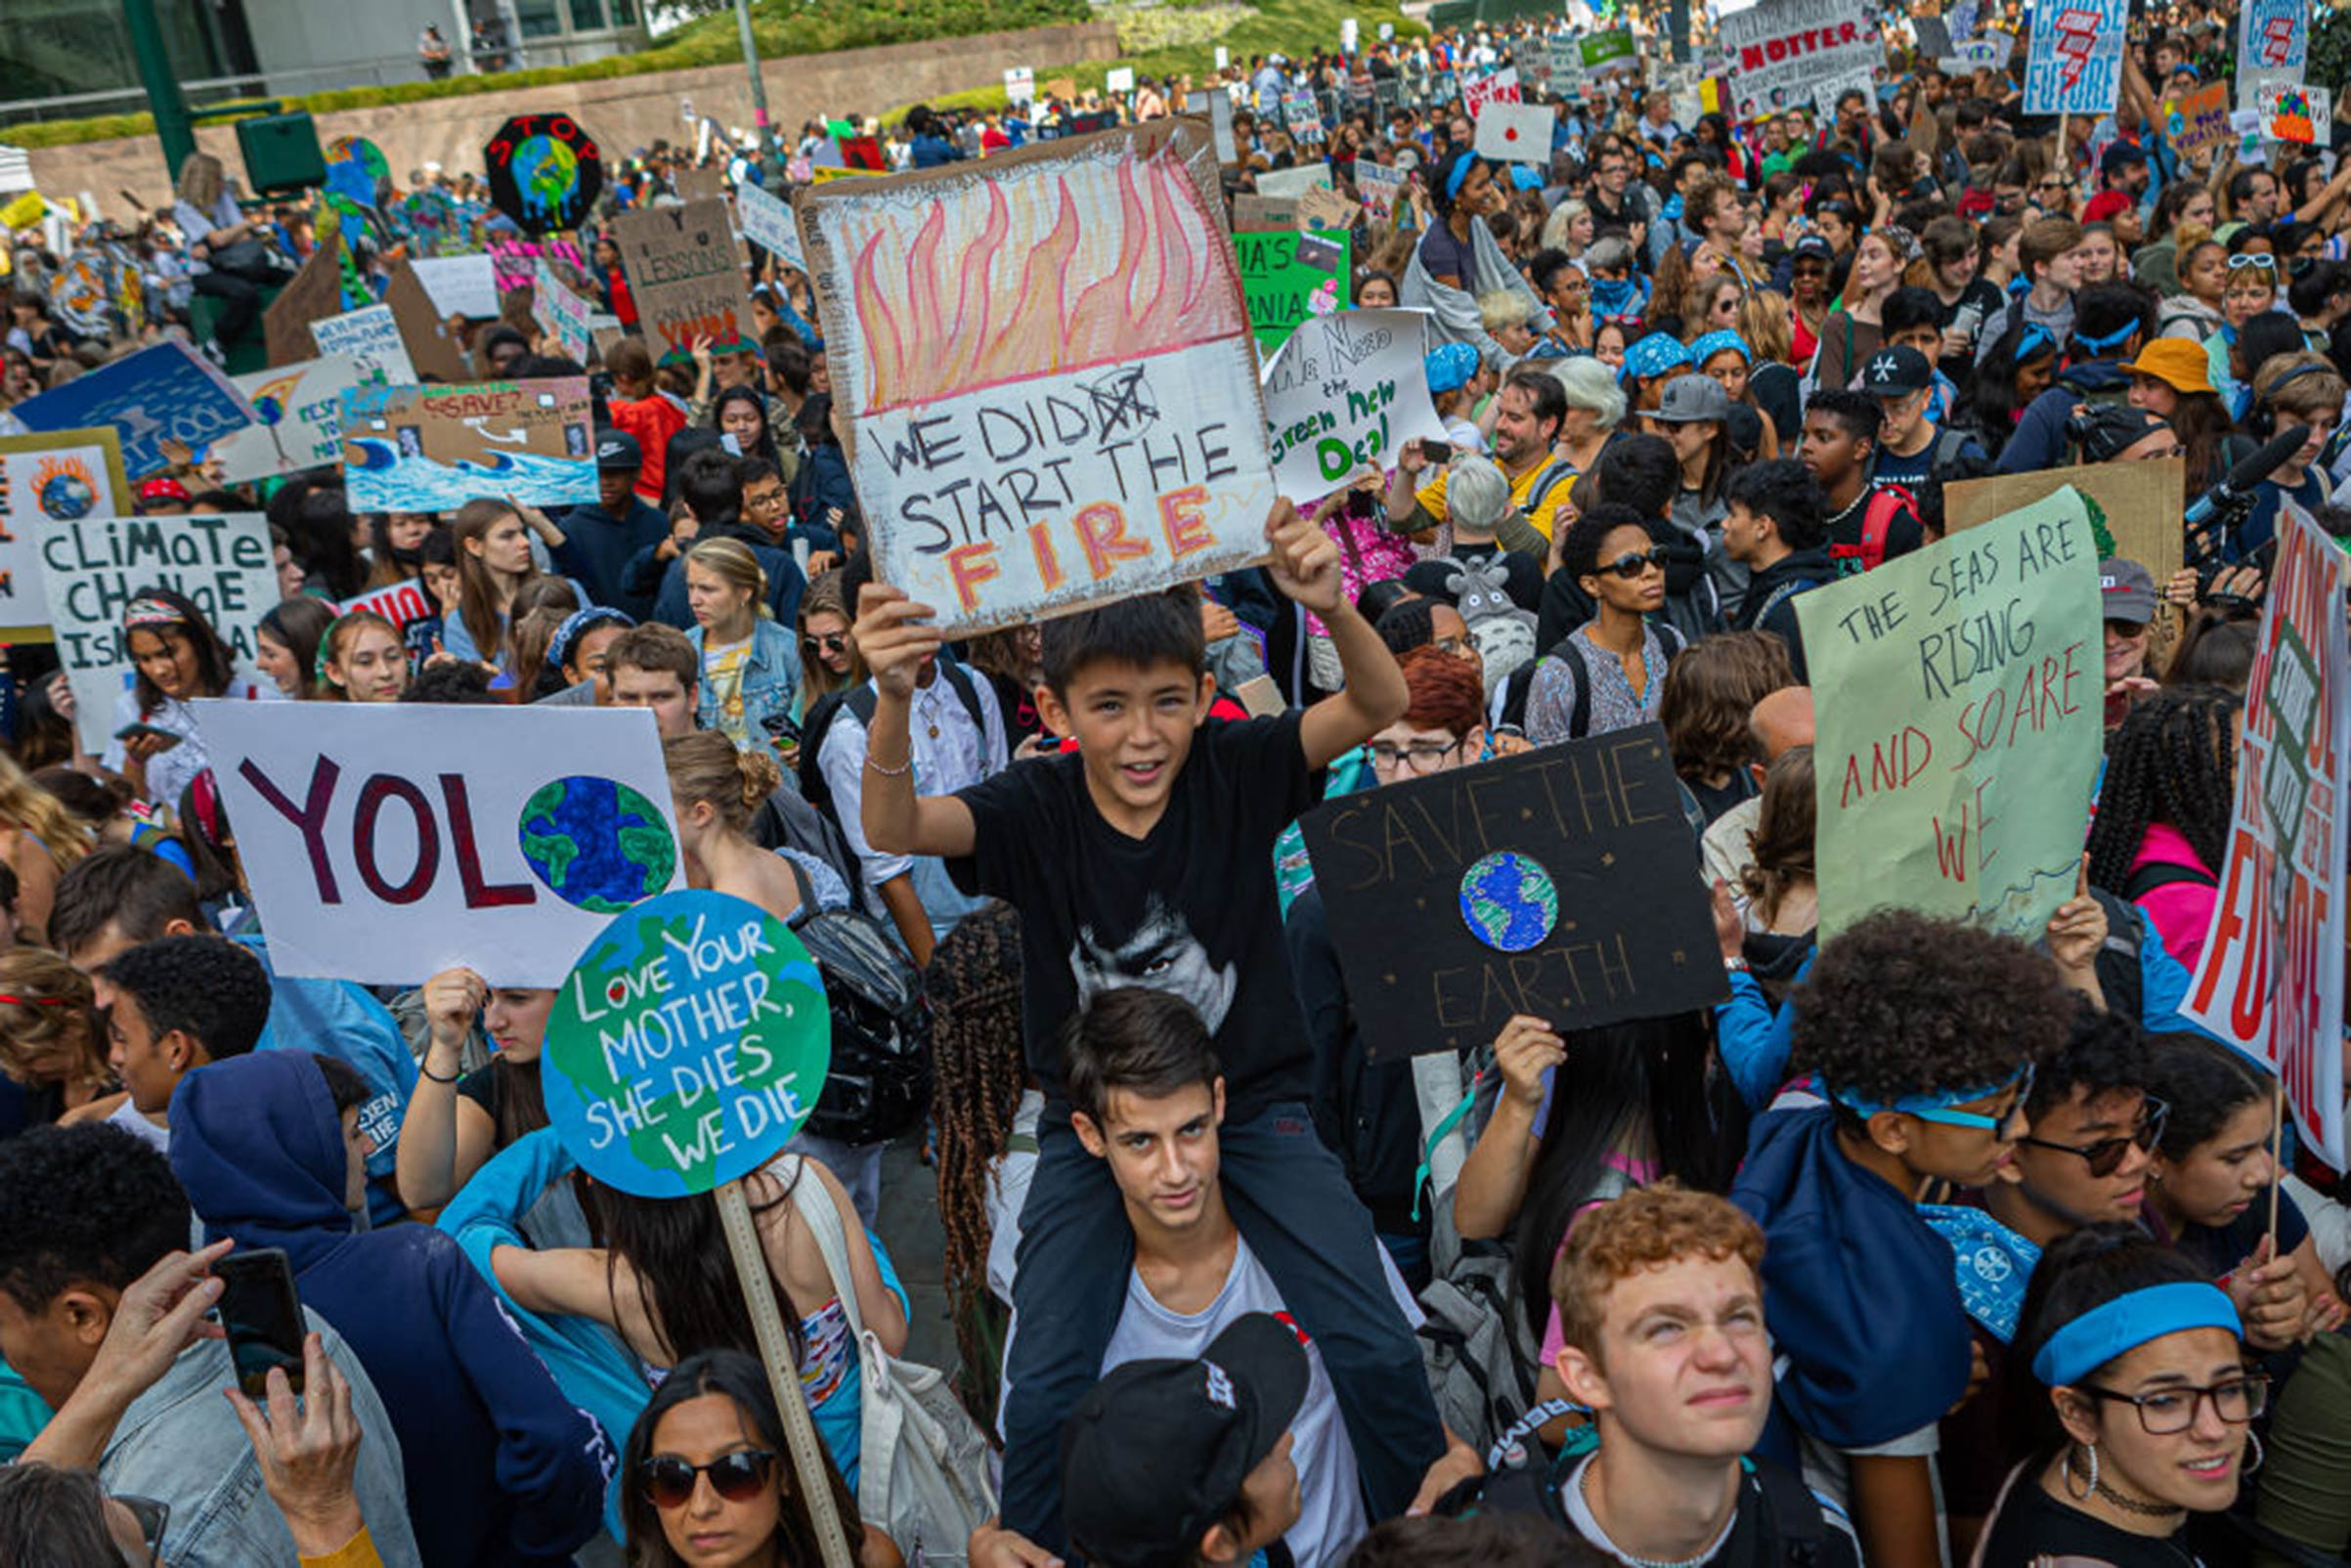 Organizers estimated that 250,000 people marched in New York City on Sept. 20 as part of a global strike protesting climate change.